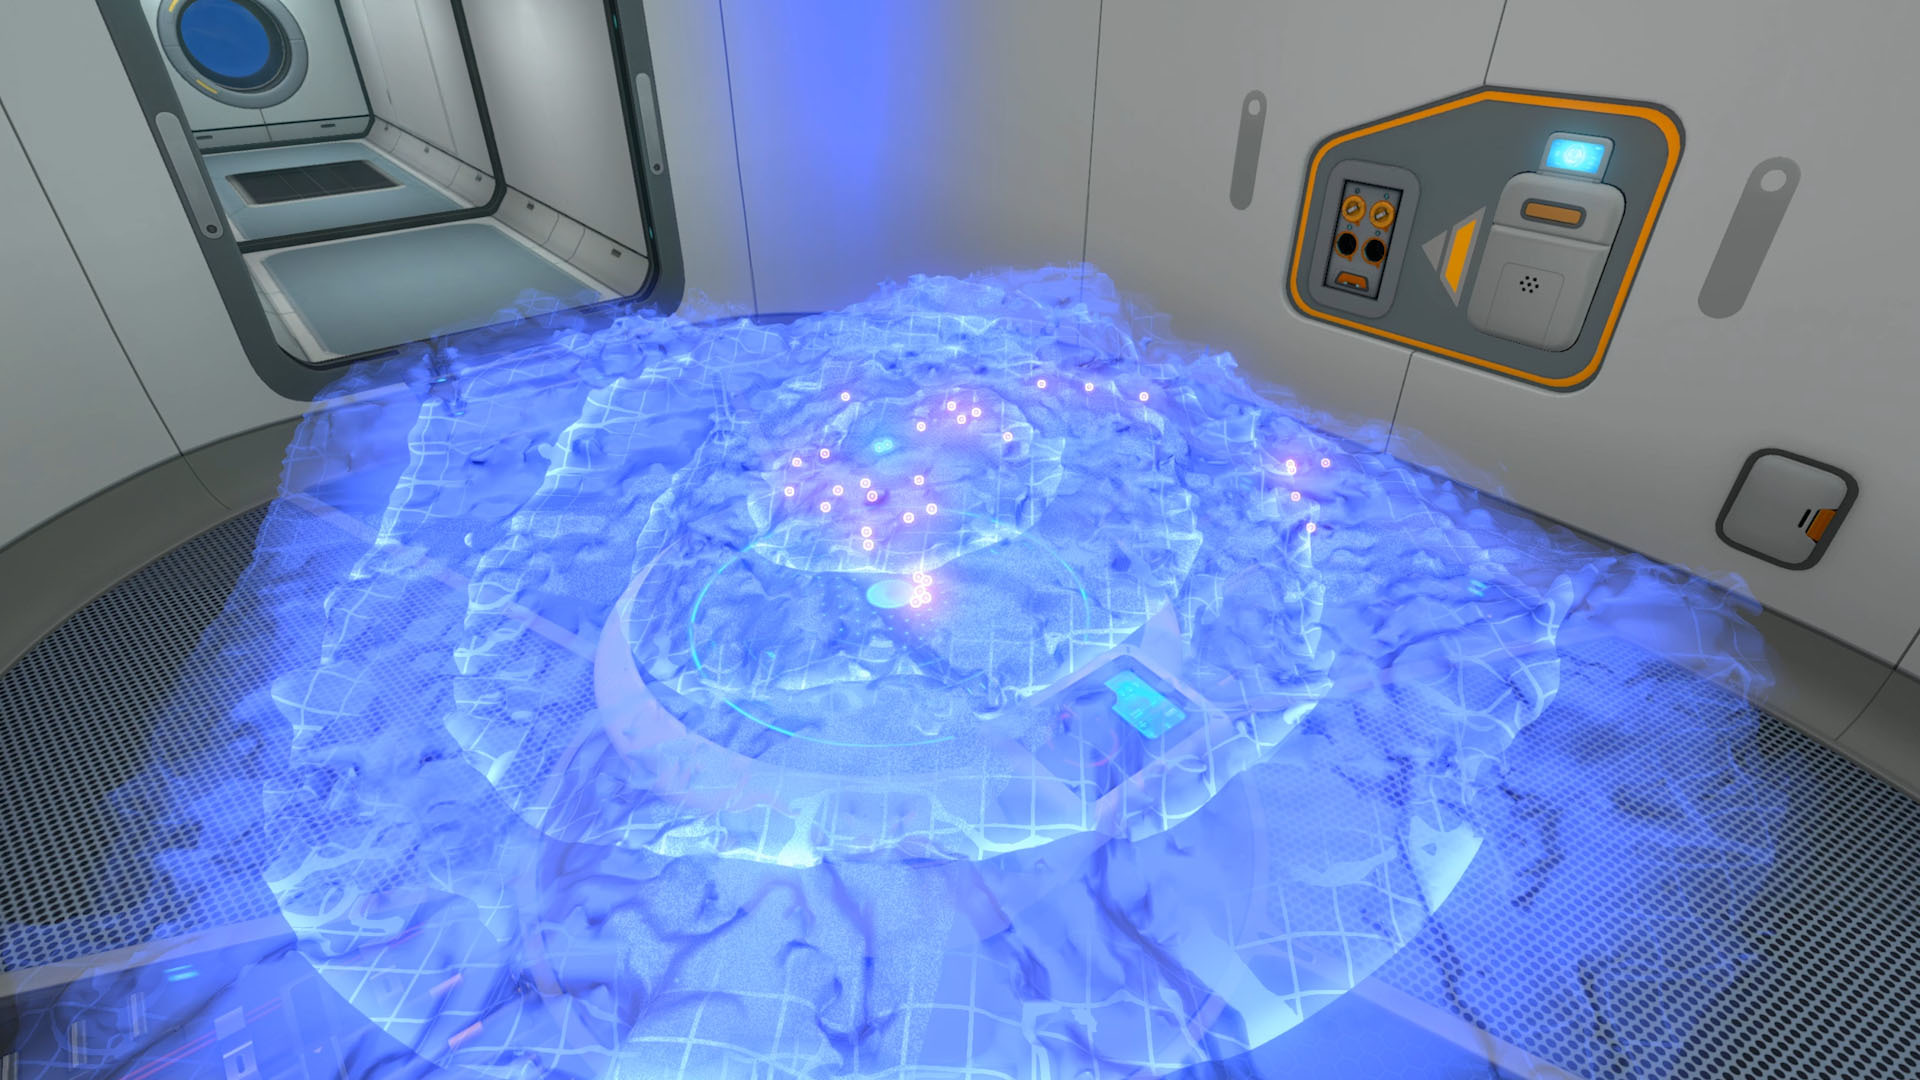 Subnautica Infected Update Noticias Do Steam We looked at the scanner room and the scanner room hud. subnautica infected update noticias